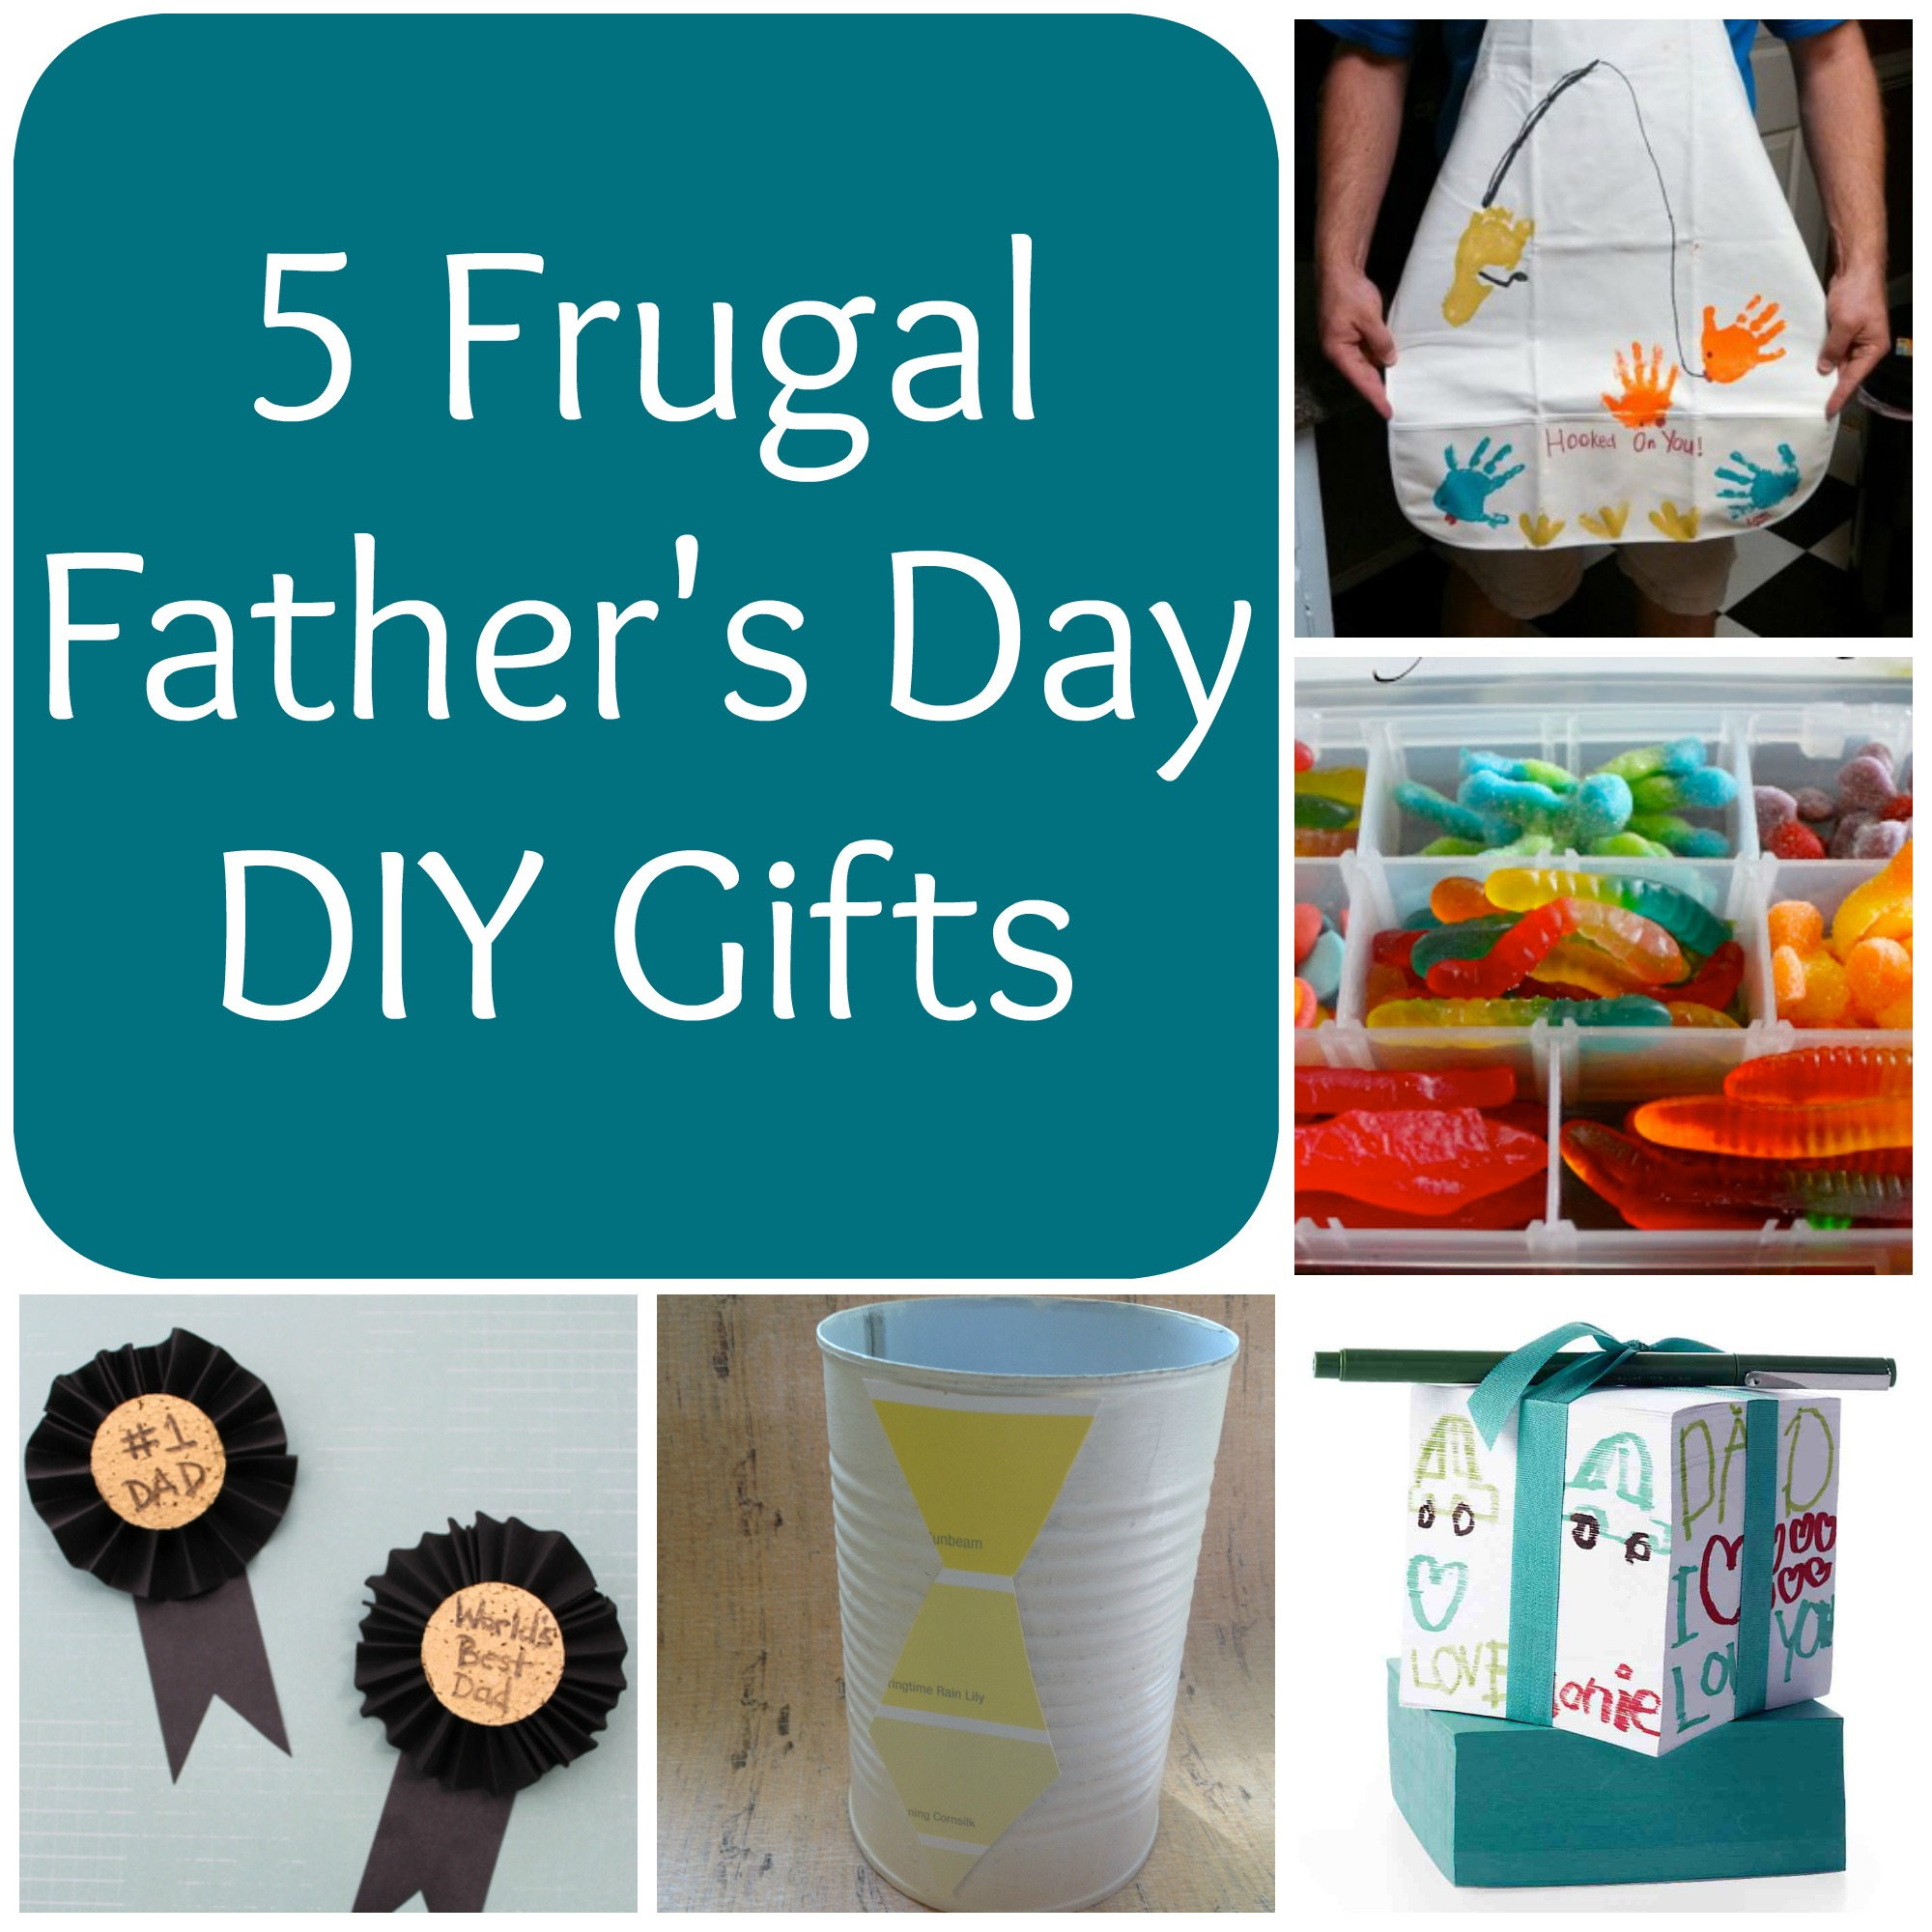 5 Frugal Father's Day DIY Gifts